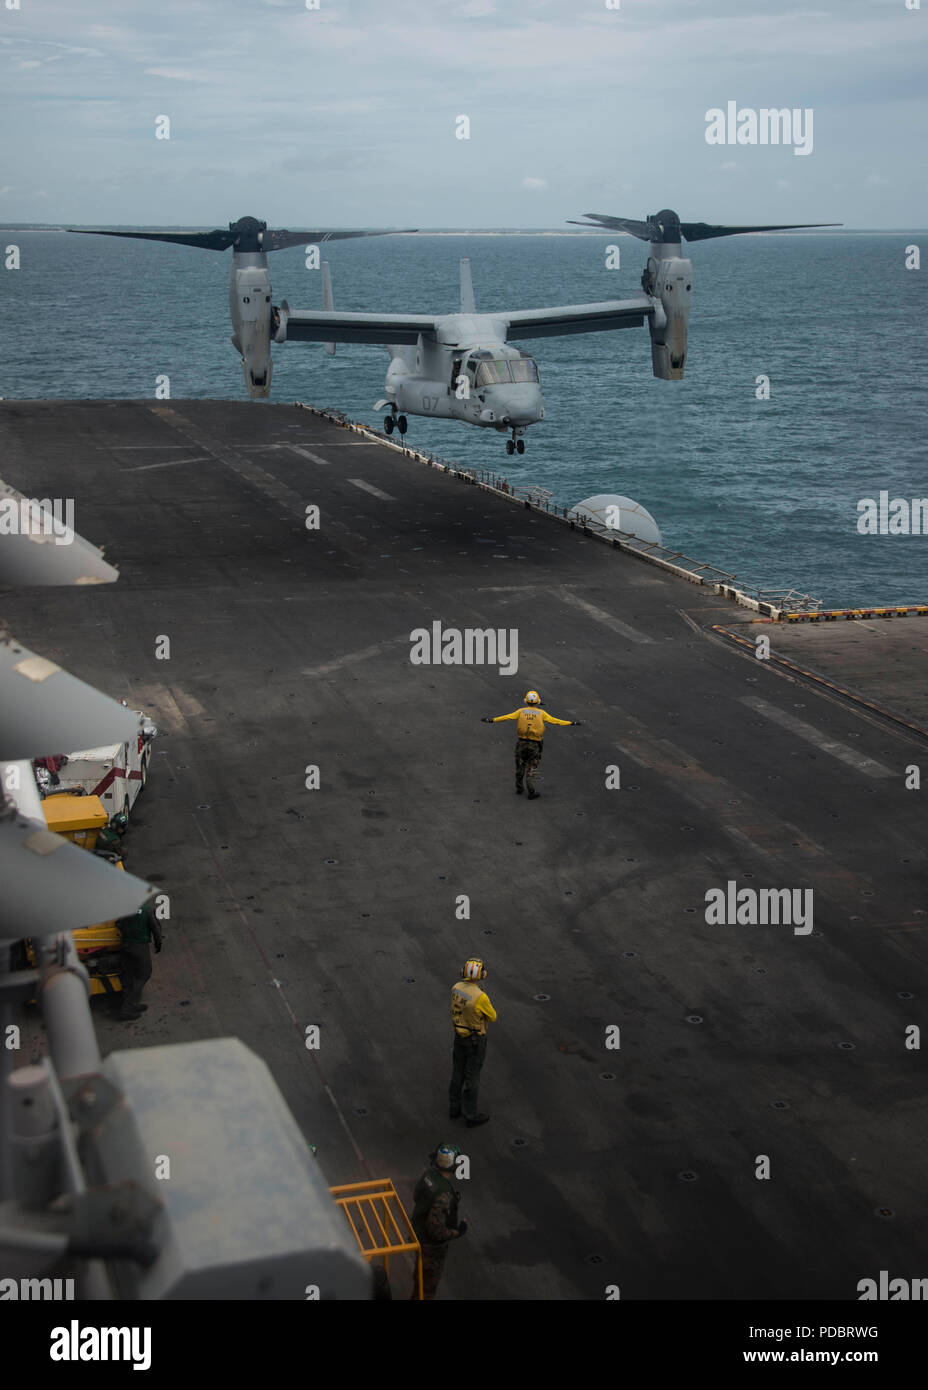 180803-N-ZG607-0025  ATLANTIC OCEAN (Aug. 3, 2018) An MV-22B Osprey, attached to Marine Medium Tiltrotor Squadron (VMM) 162 (Reinforced), prepares to land on the flight deck of the Wasp-class amphibious assault ship USS Iwo Jima (LHD 7), Aug. 3, 2018. Iwo Jima is deployed with its amphibious ready group in support of maritime security operations and theatre security cooperation efforts in Europe and the Middle East. (U.S. Navy photo by Mass Communication Specialist 3rd Class Dominick A. Cremeans/Released) Stock Photo